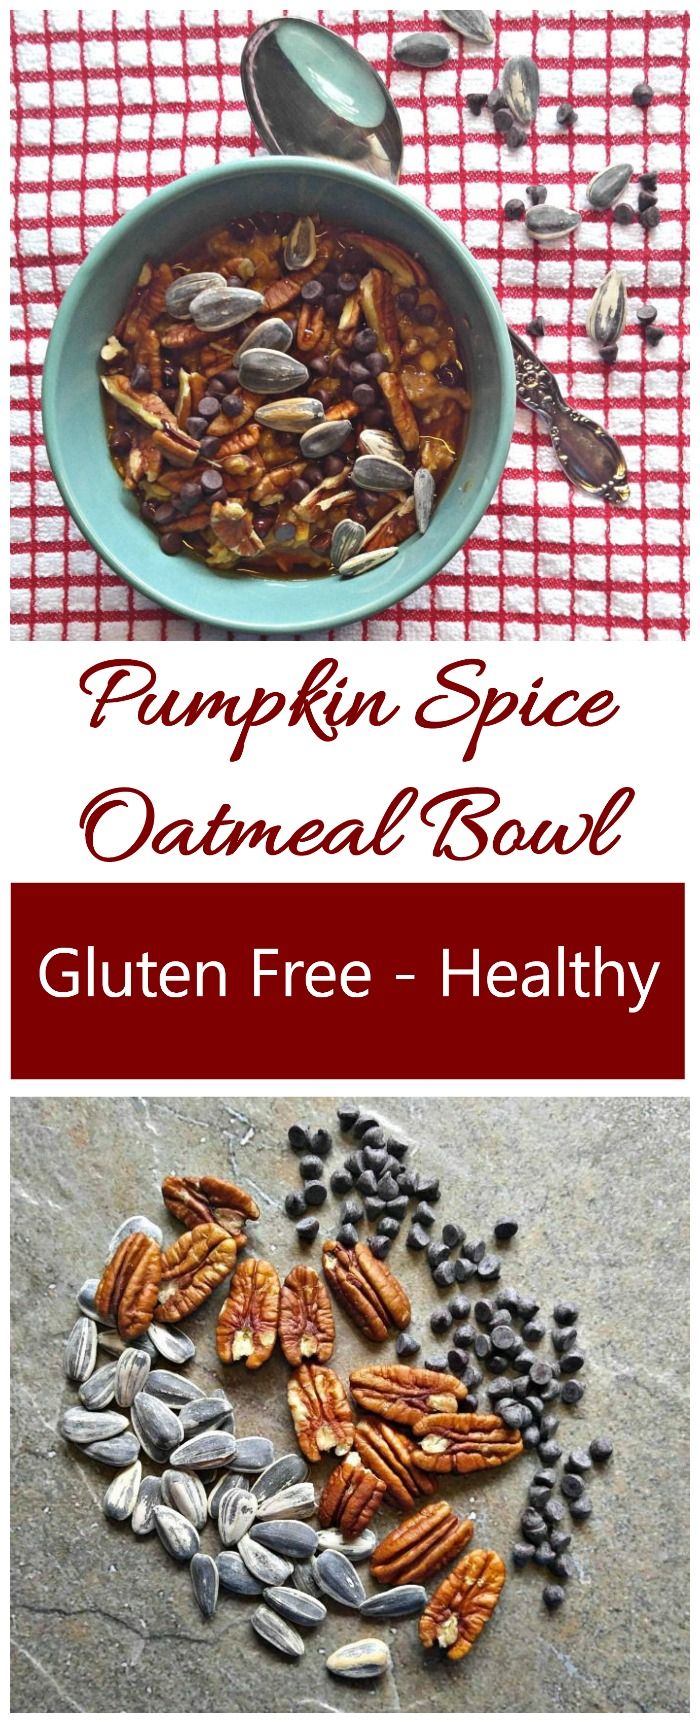 This pumpkin spice oatmeal bowl is ready in 10 minutes and is full of the flavors of fall. #pumpkinspiec #oatmealrecipes